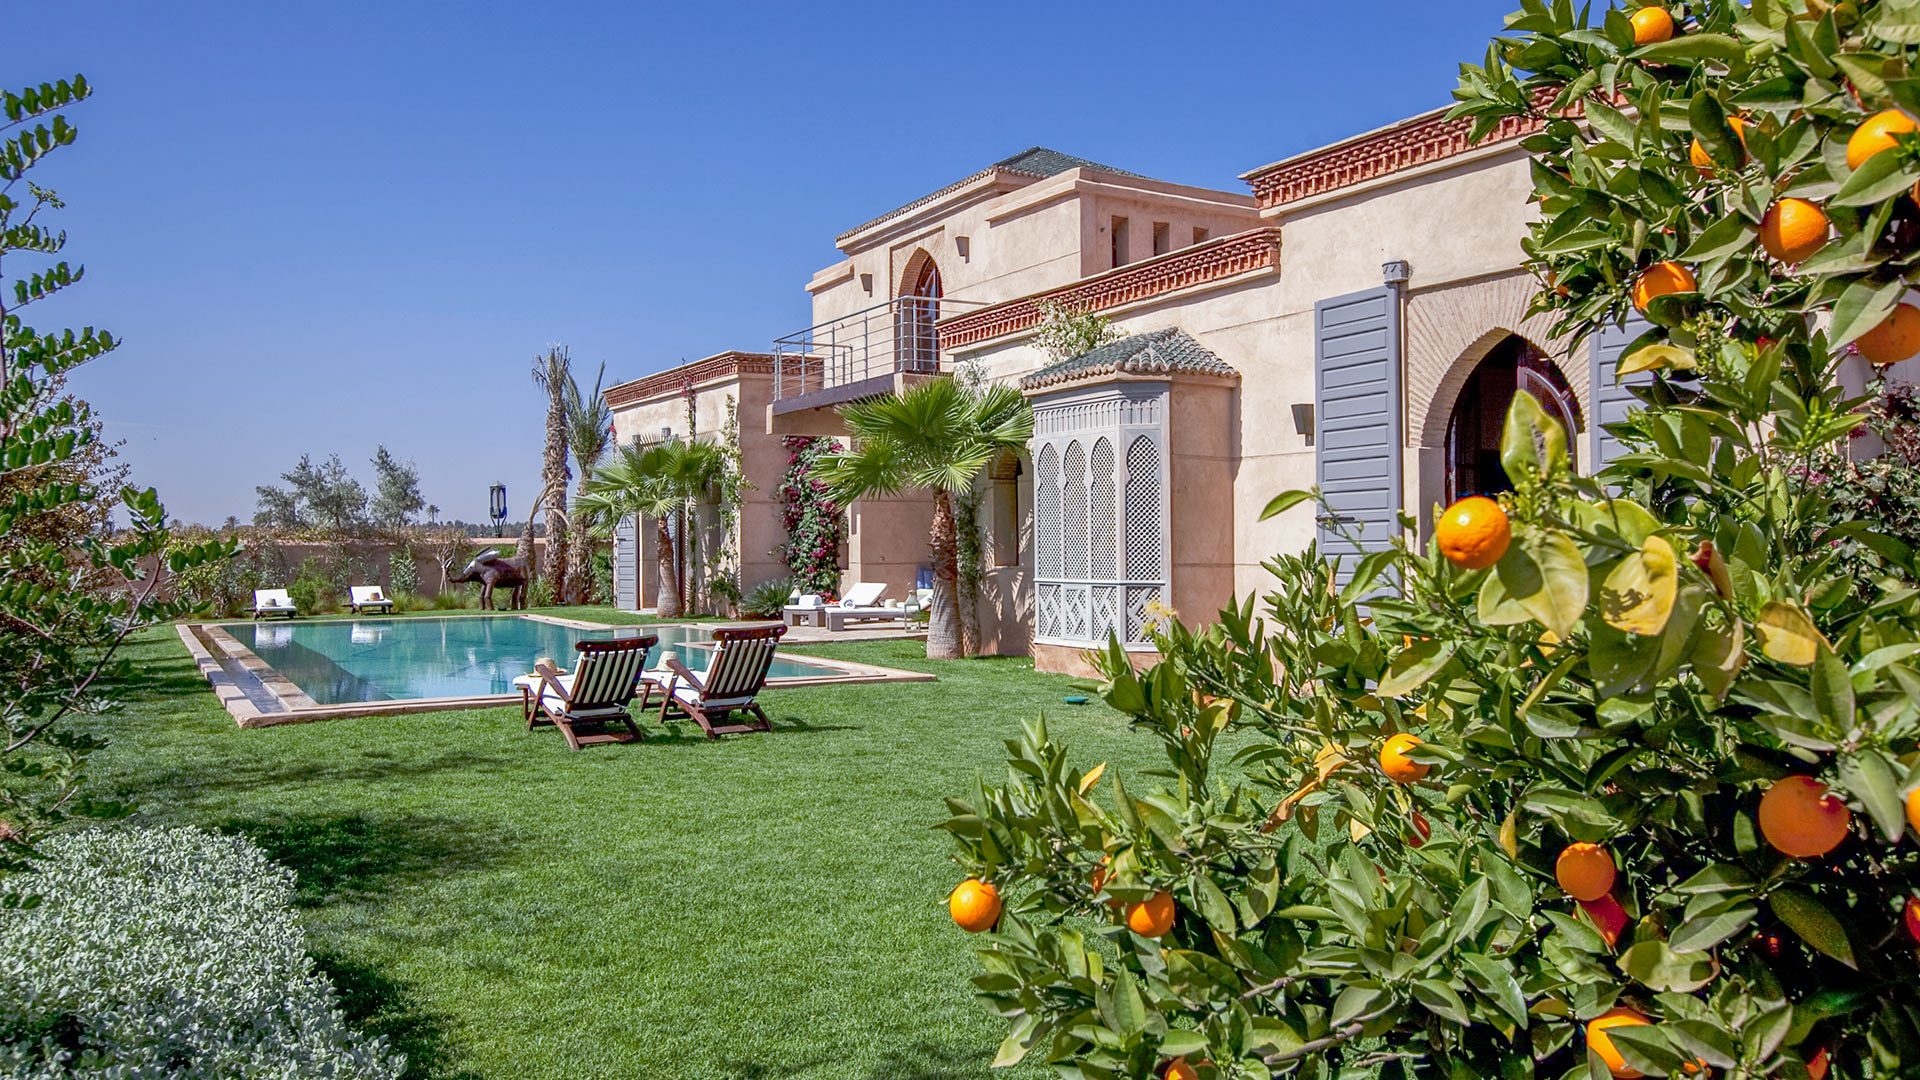 Villa Villa Amanassa, Location à Marrakech